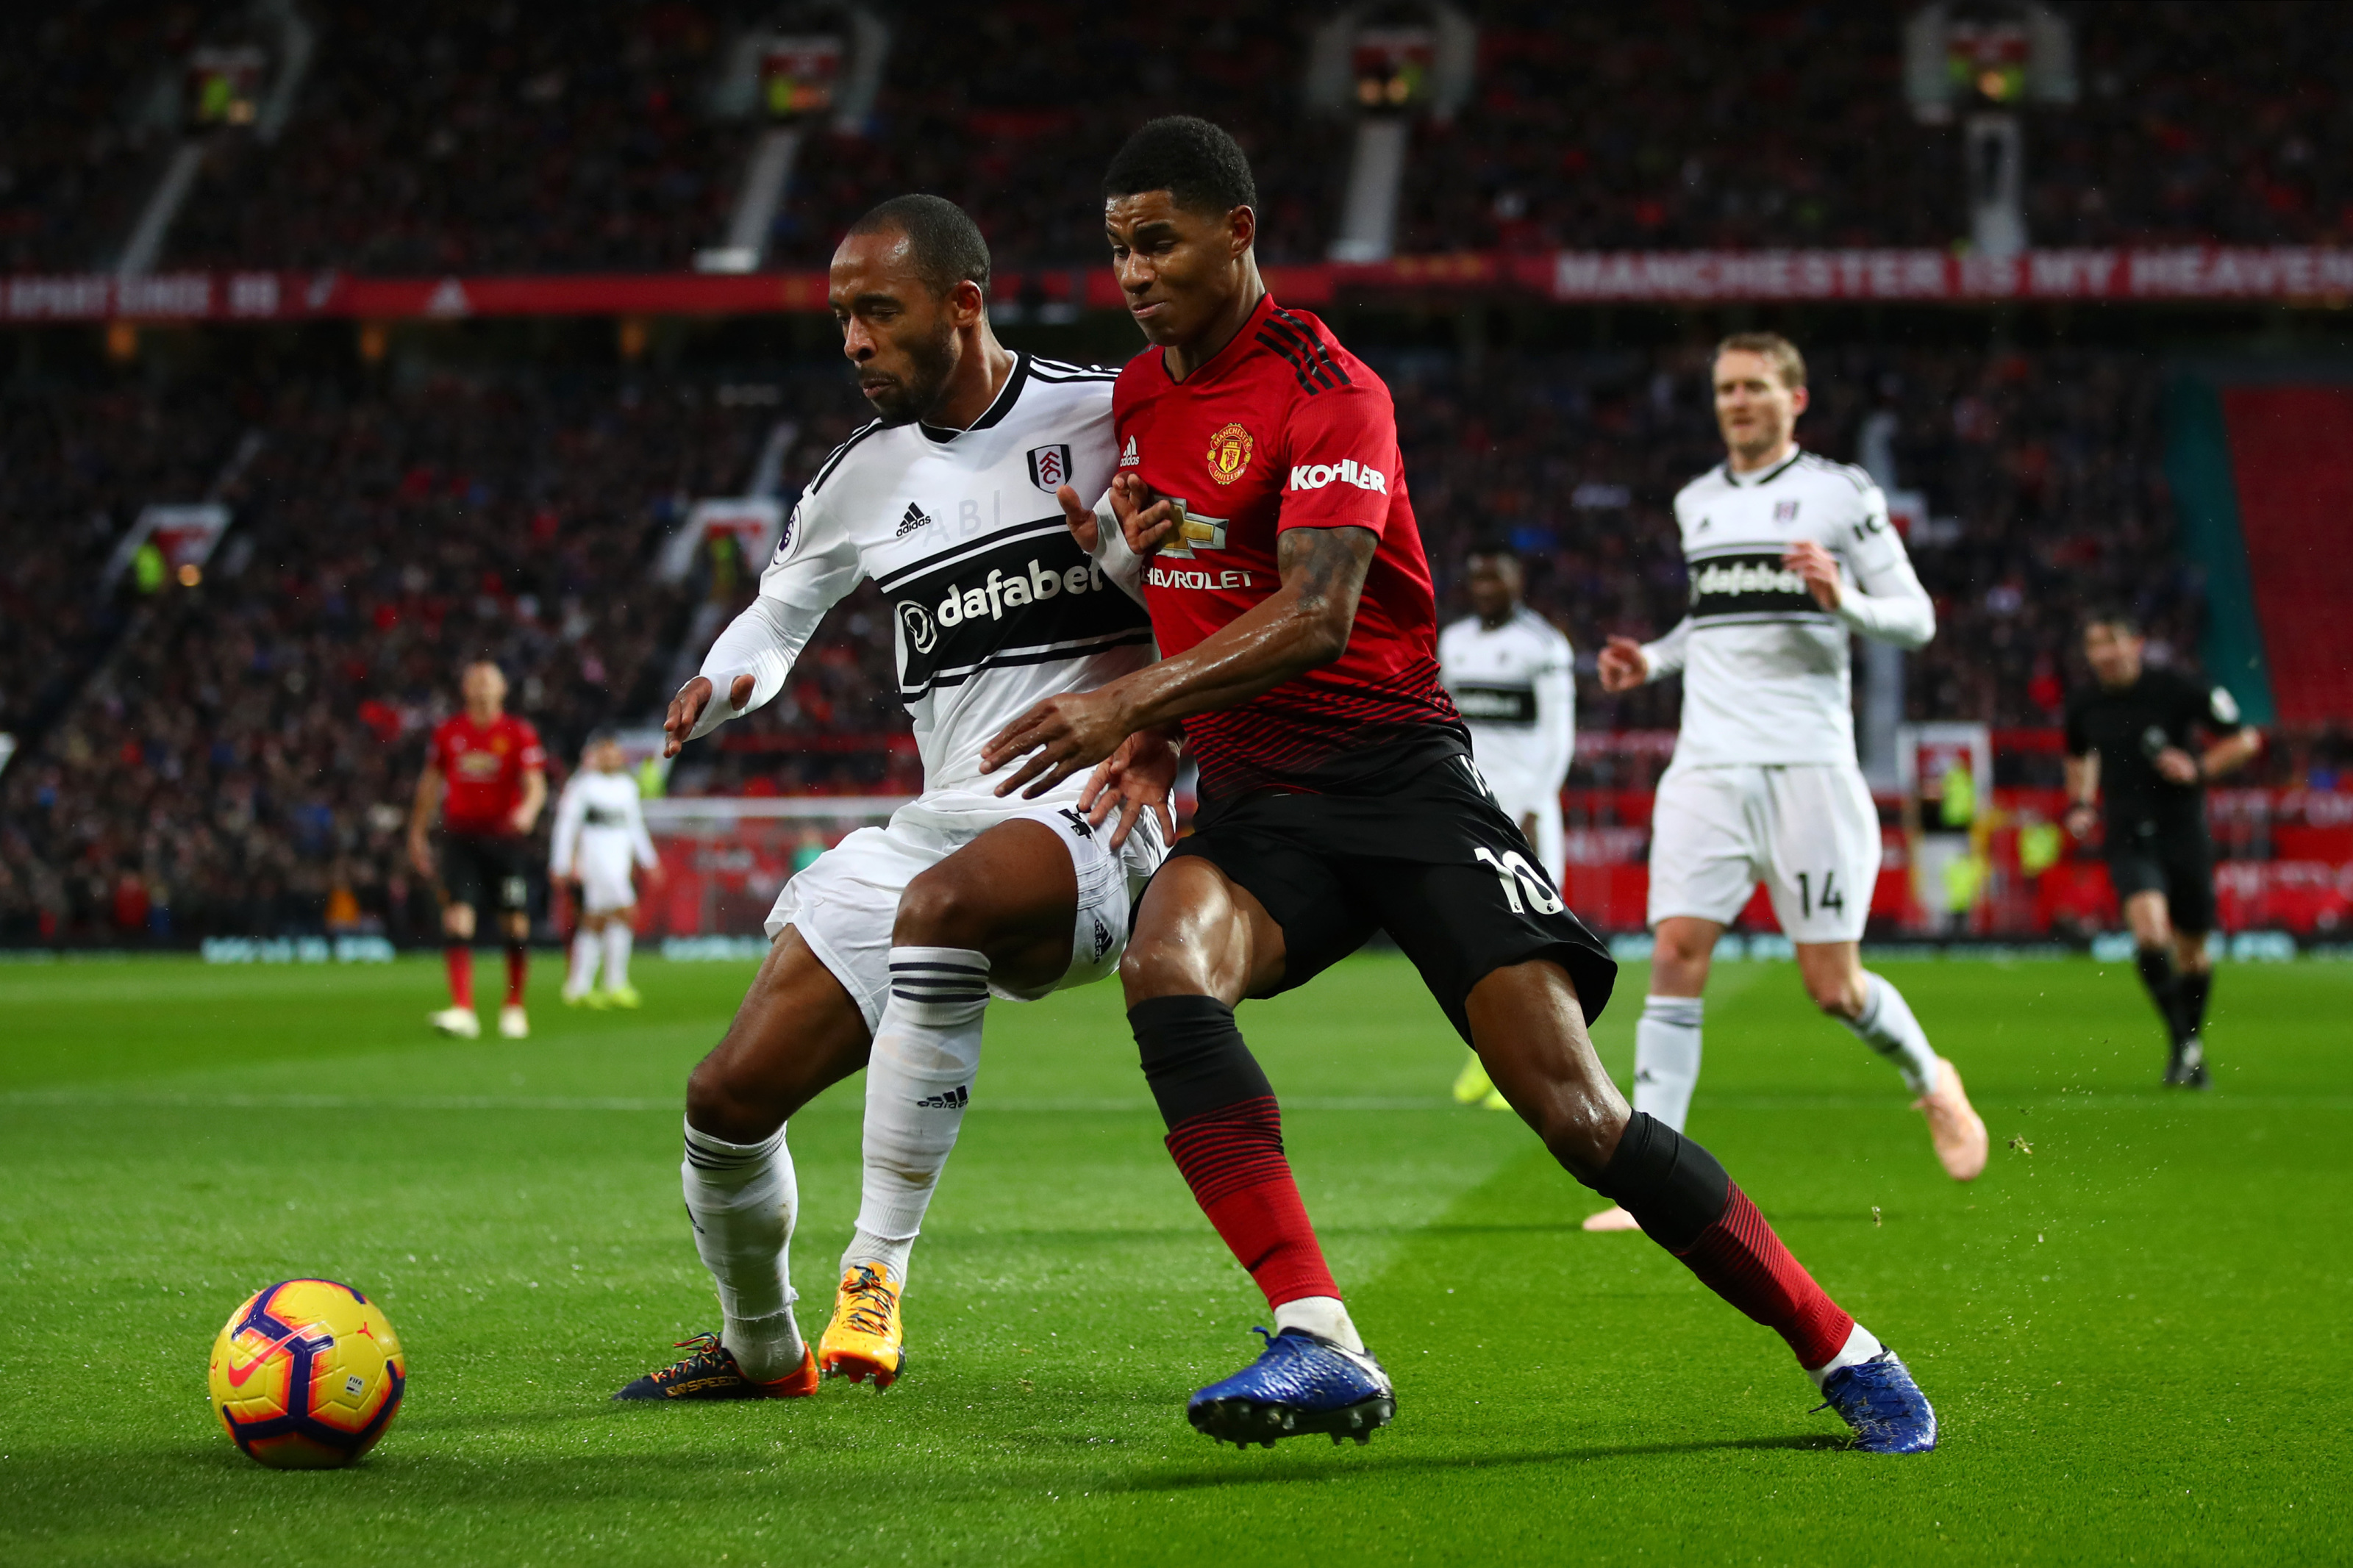 Fulham vs Manchester United preview – a win could see the Red Devils move  to 4th place this gameweek!